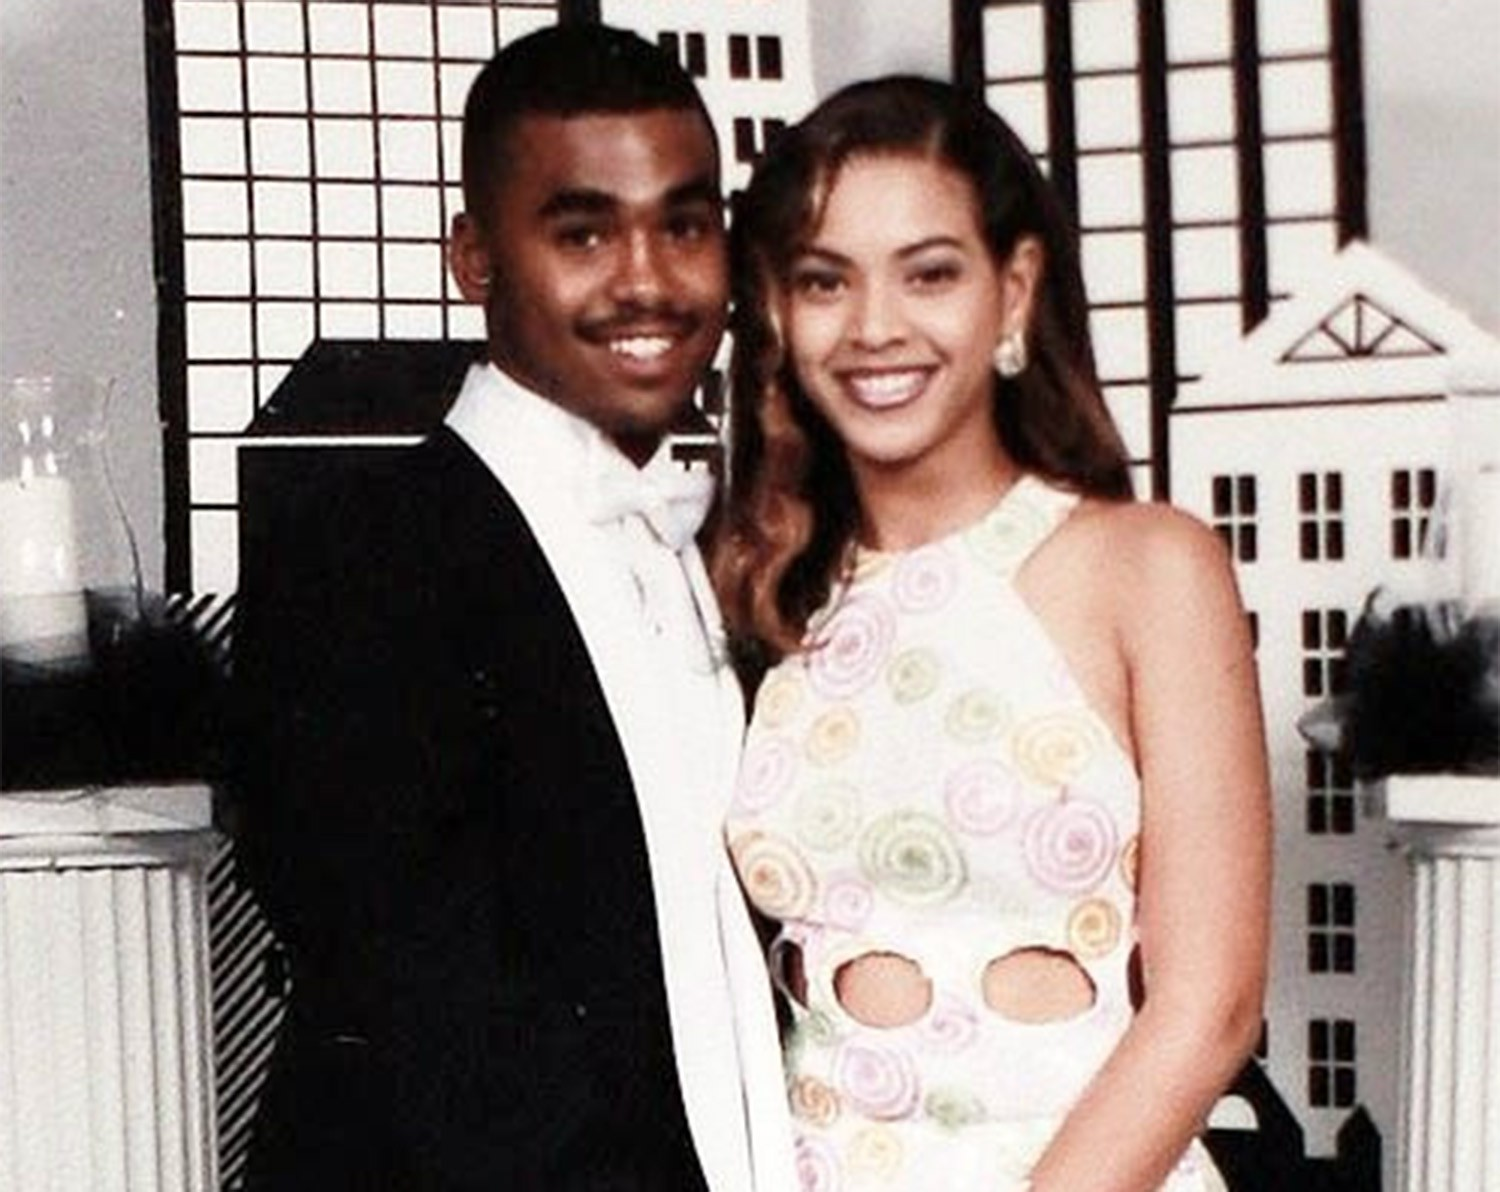 Girl gives birth to own prom date in Melbourne